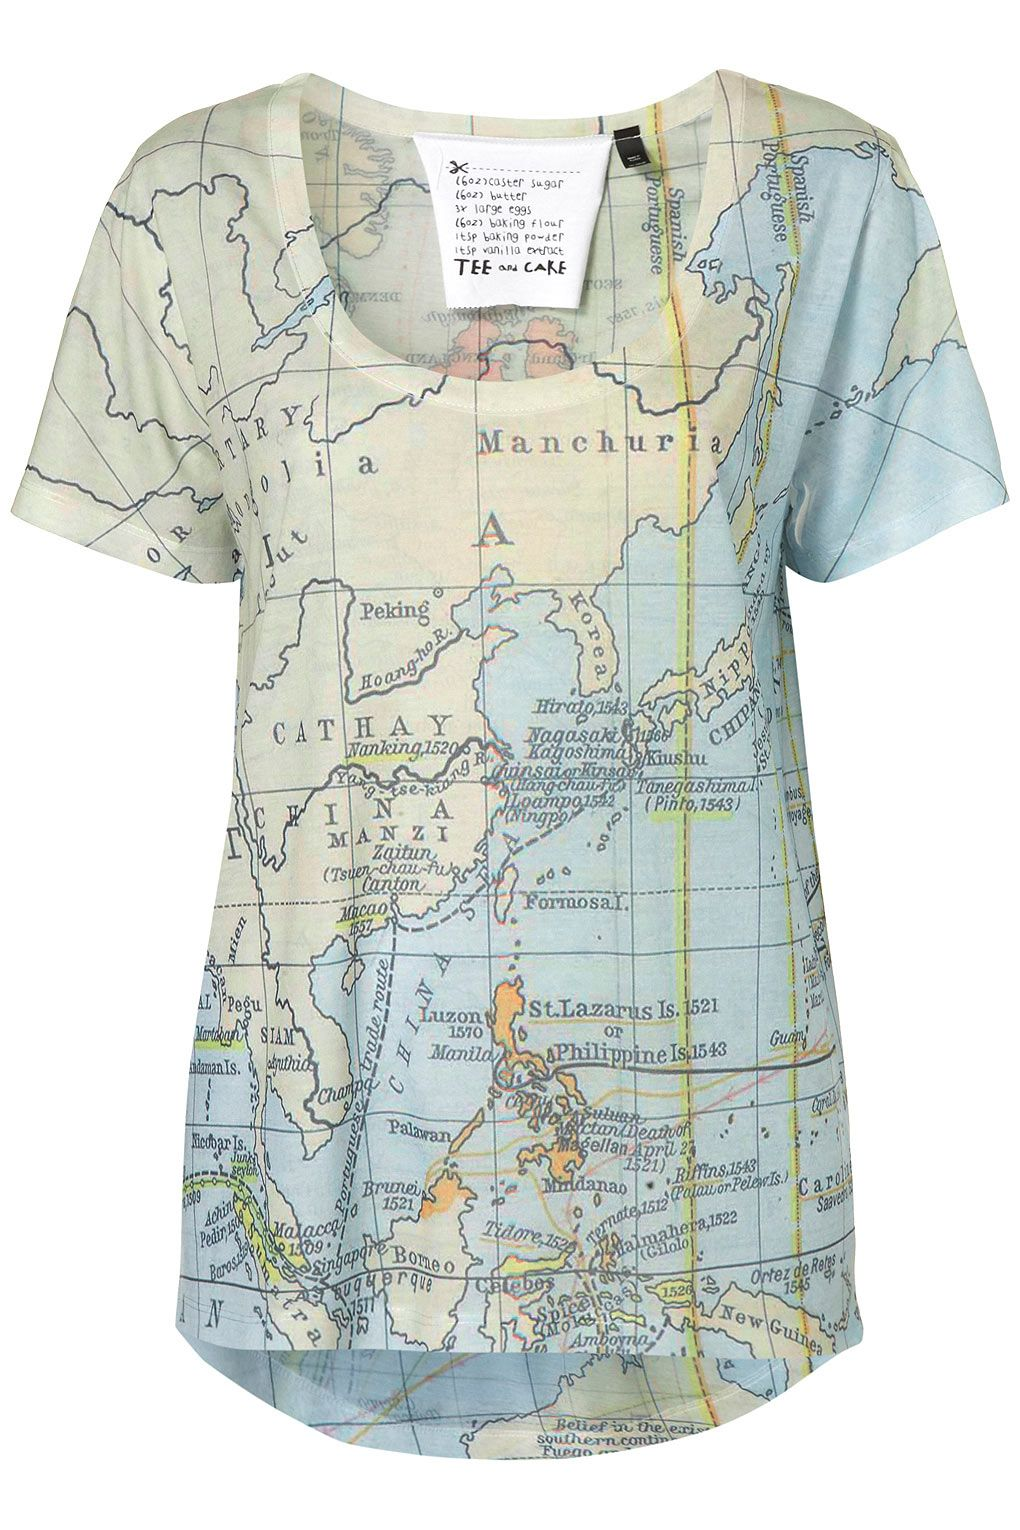 Map Print Tee by Tee and Cake from Topshop.